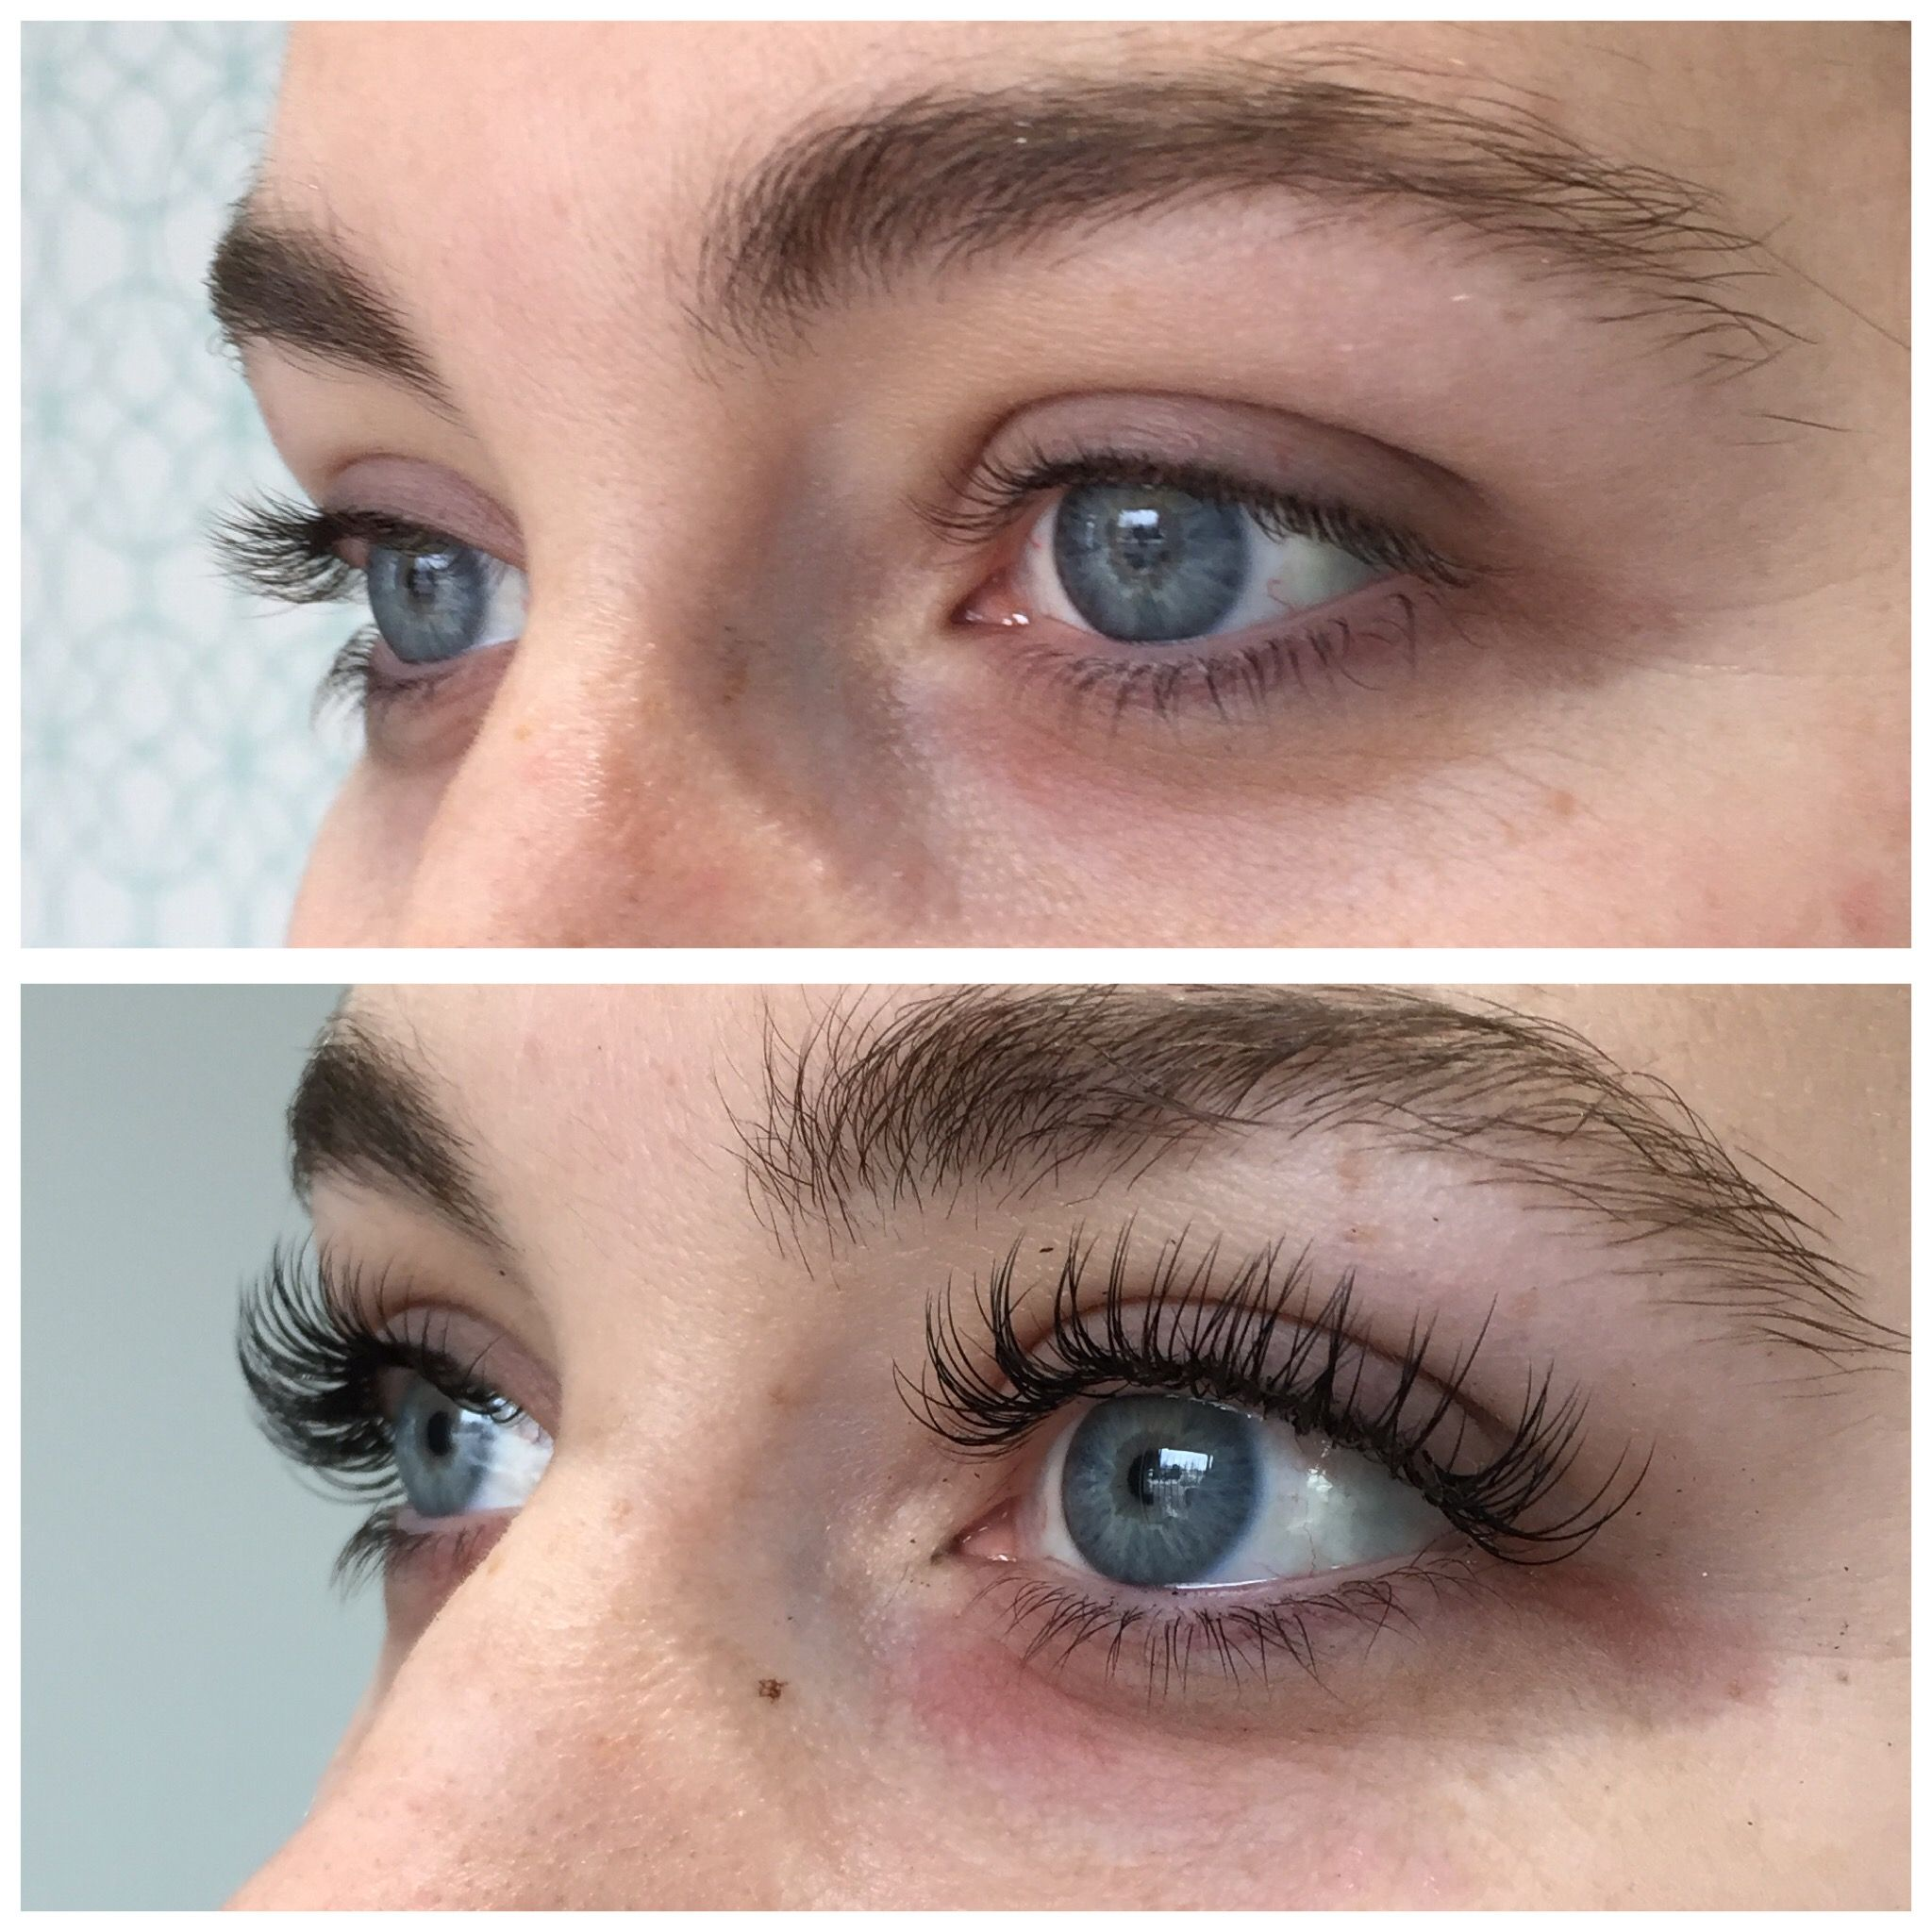 7b3515e03db Sugarlash eyelash extensions before and after | makeup in 2019 ...